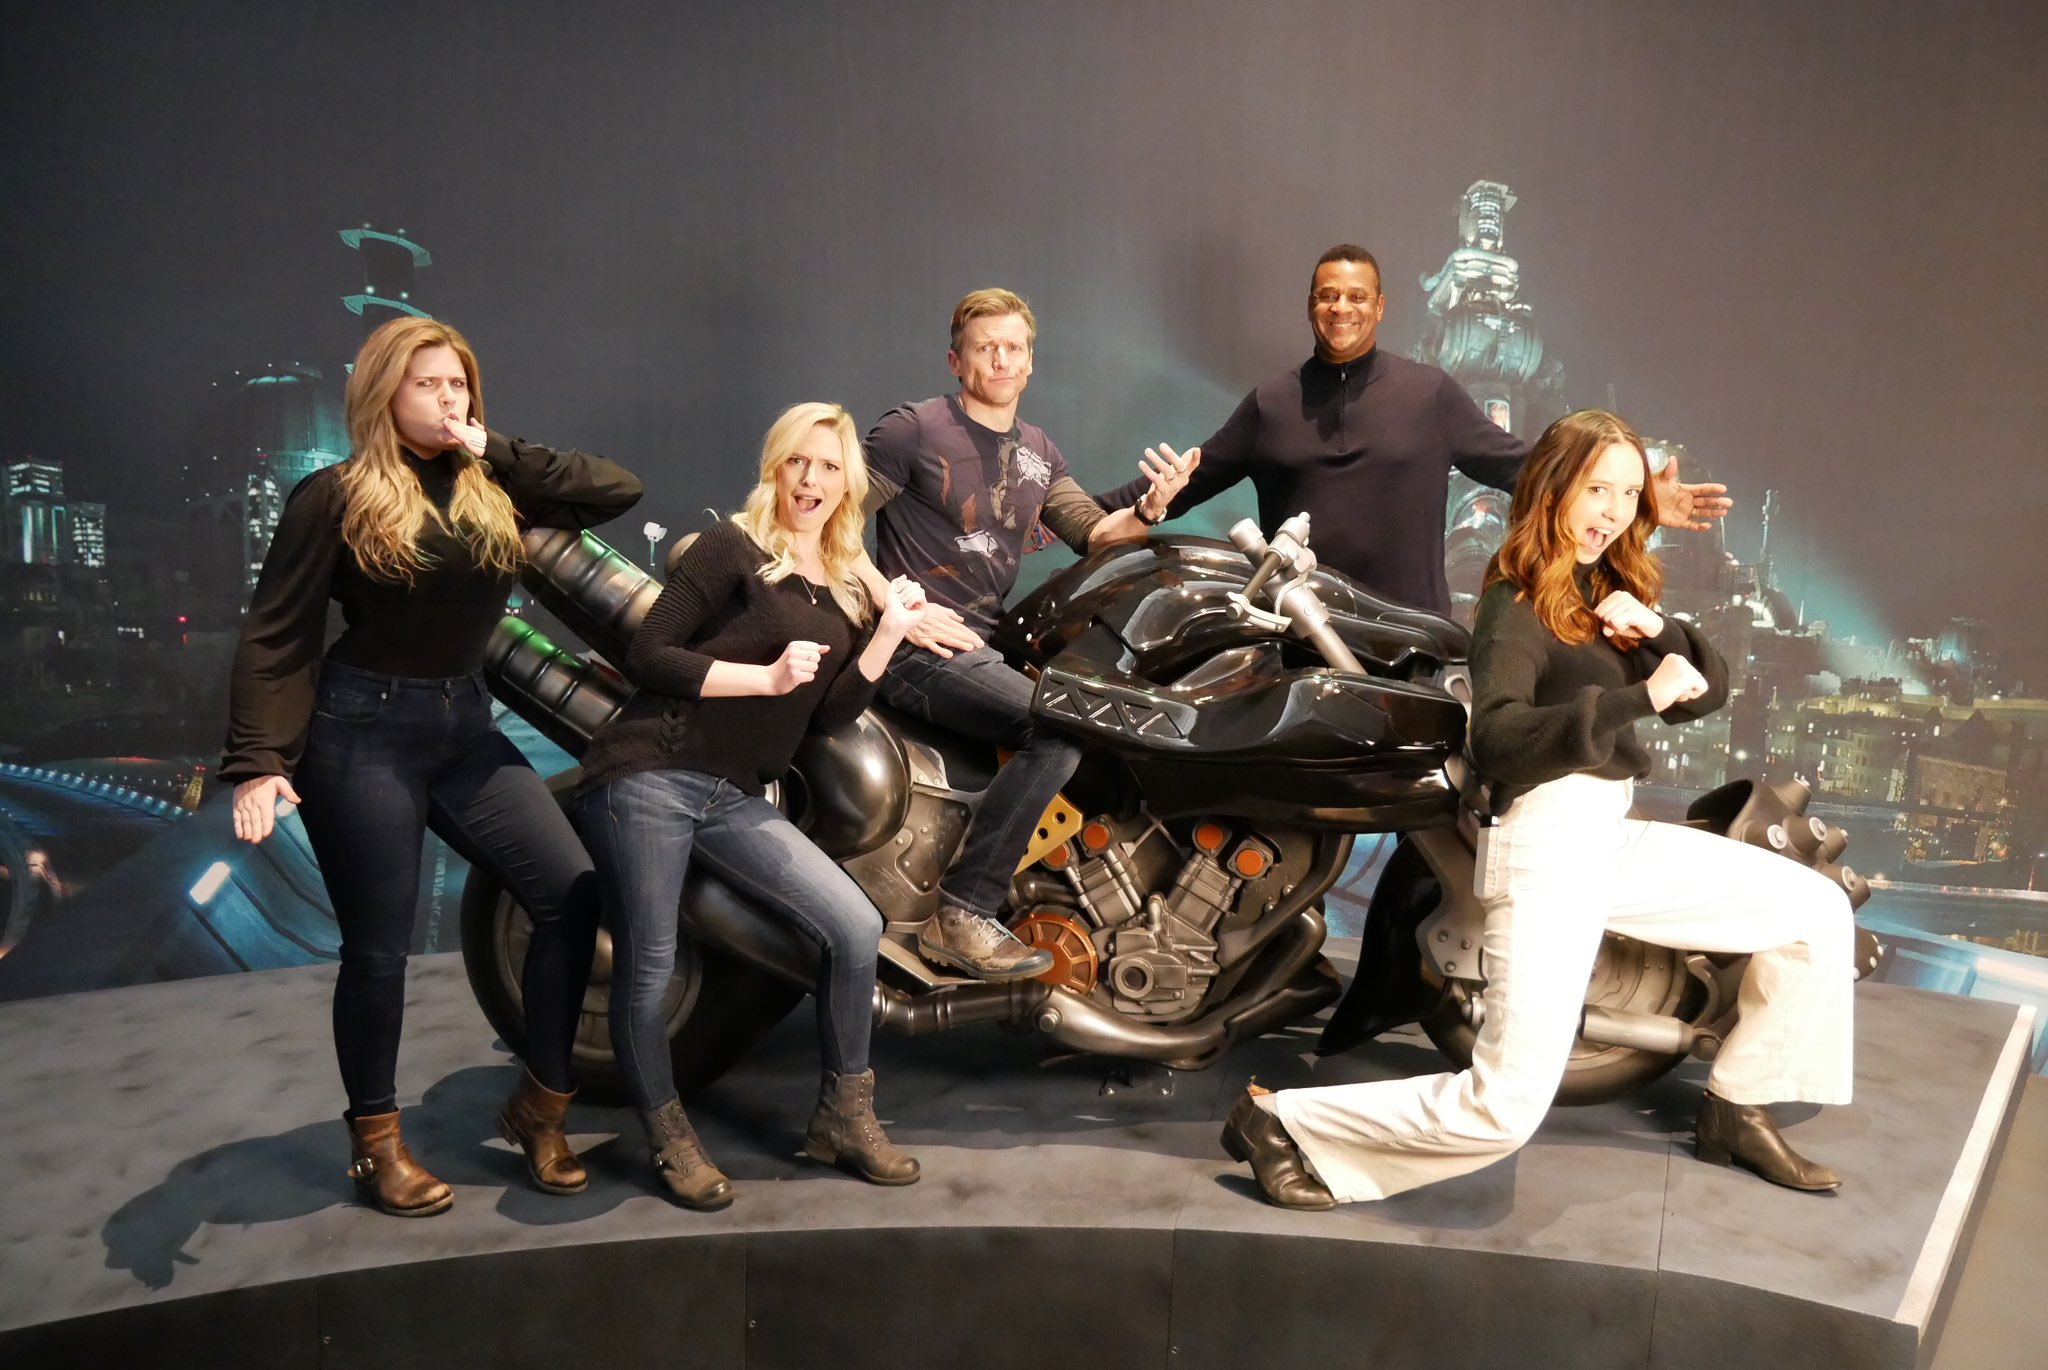 Members Of Final Fantasy VII Remake's English Voice Cast Assemble At PAX East For A Photo With Cloud's Motorcycle